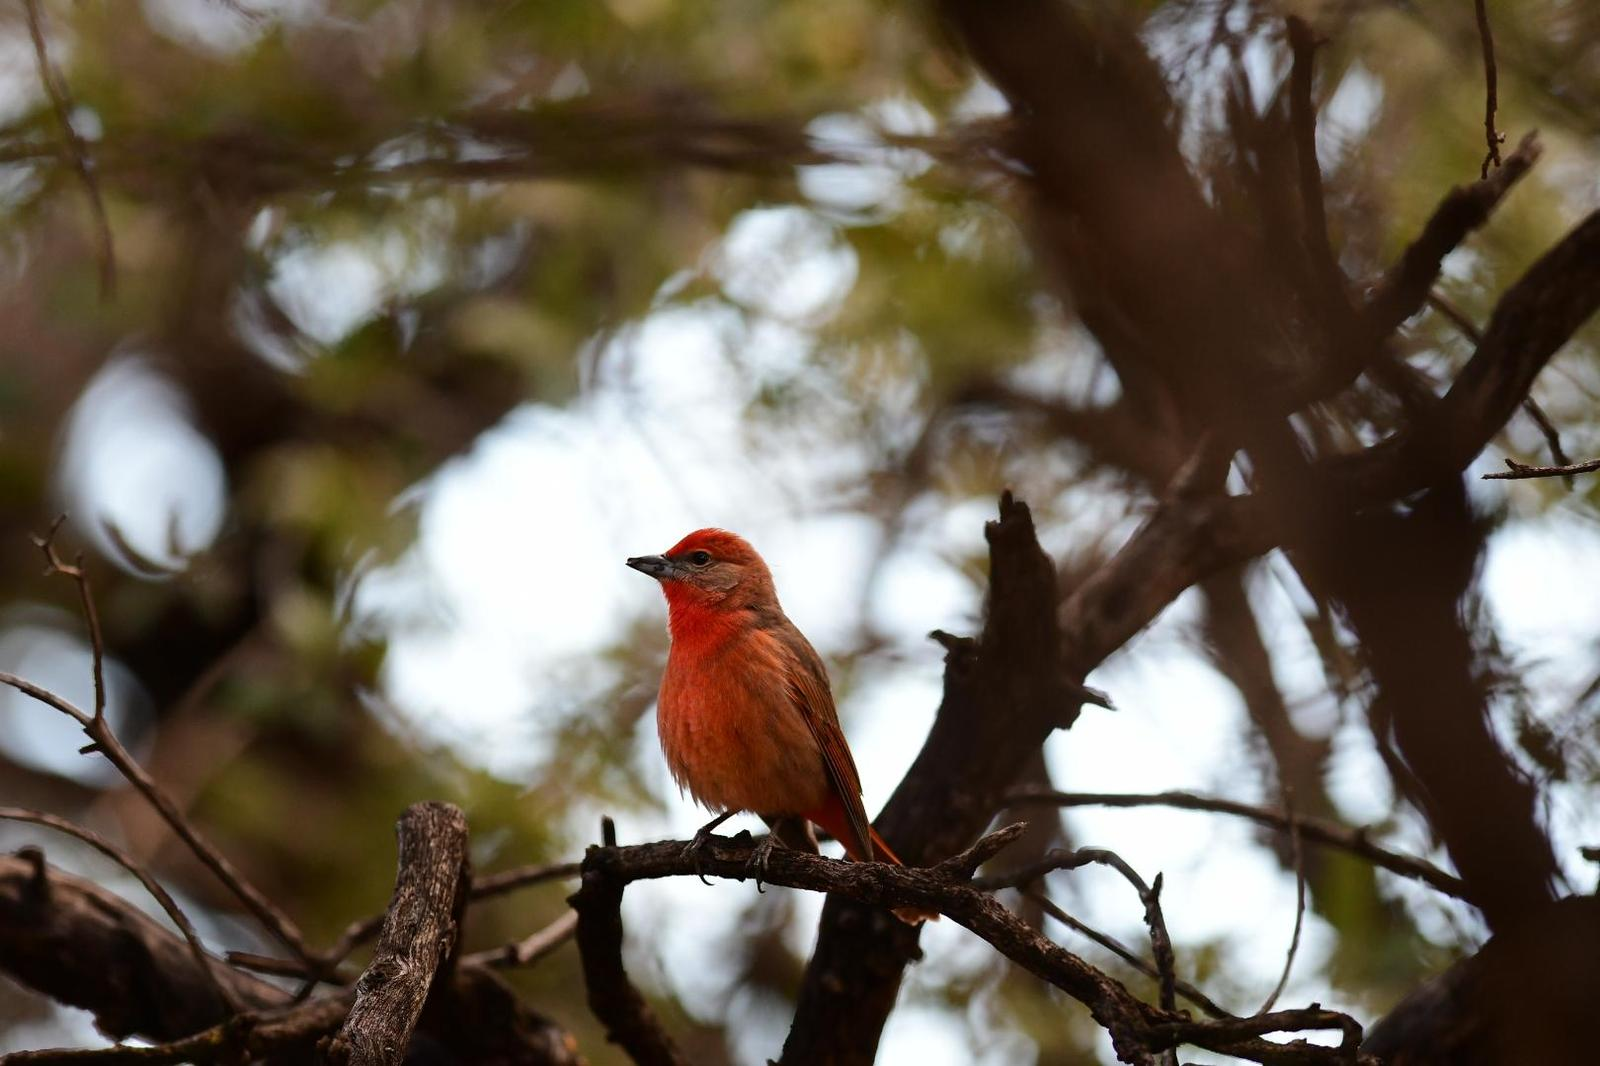 Hepatic Tanager Photo by Jacob Zadik